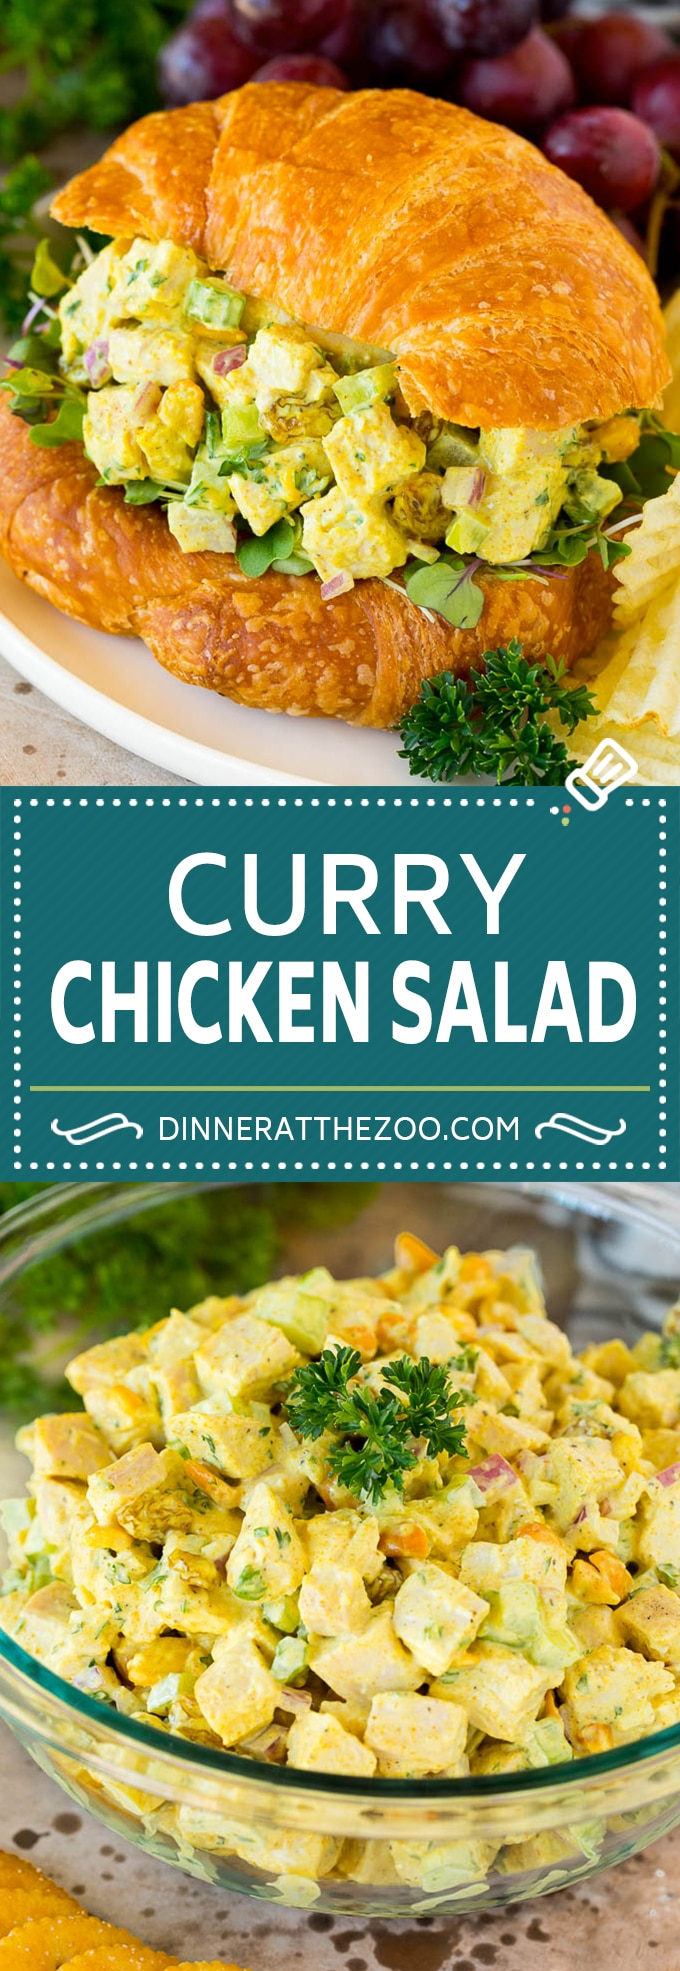 This curry chicken salad is a blend of  diced chicken, fresh veggies, dried fruit and nuts, all tossed together in a creamy spiced dressing.